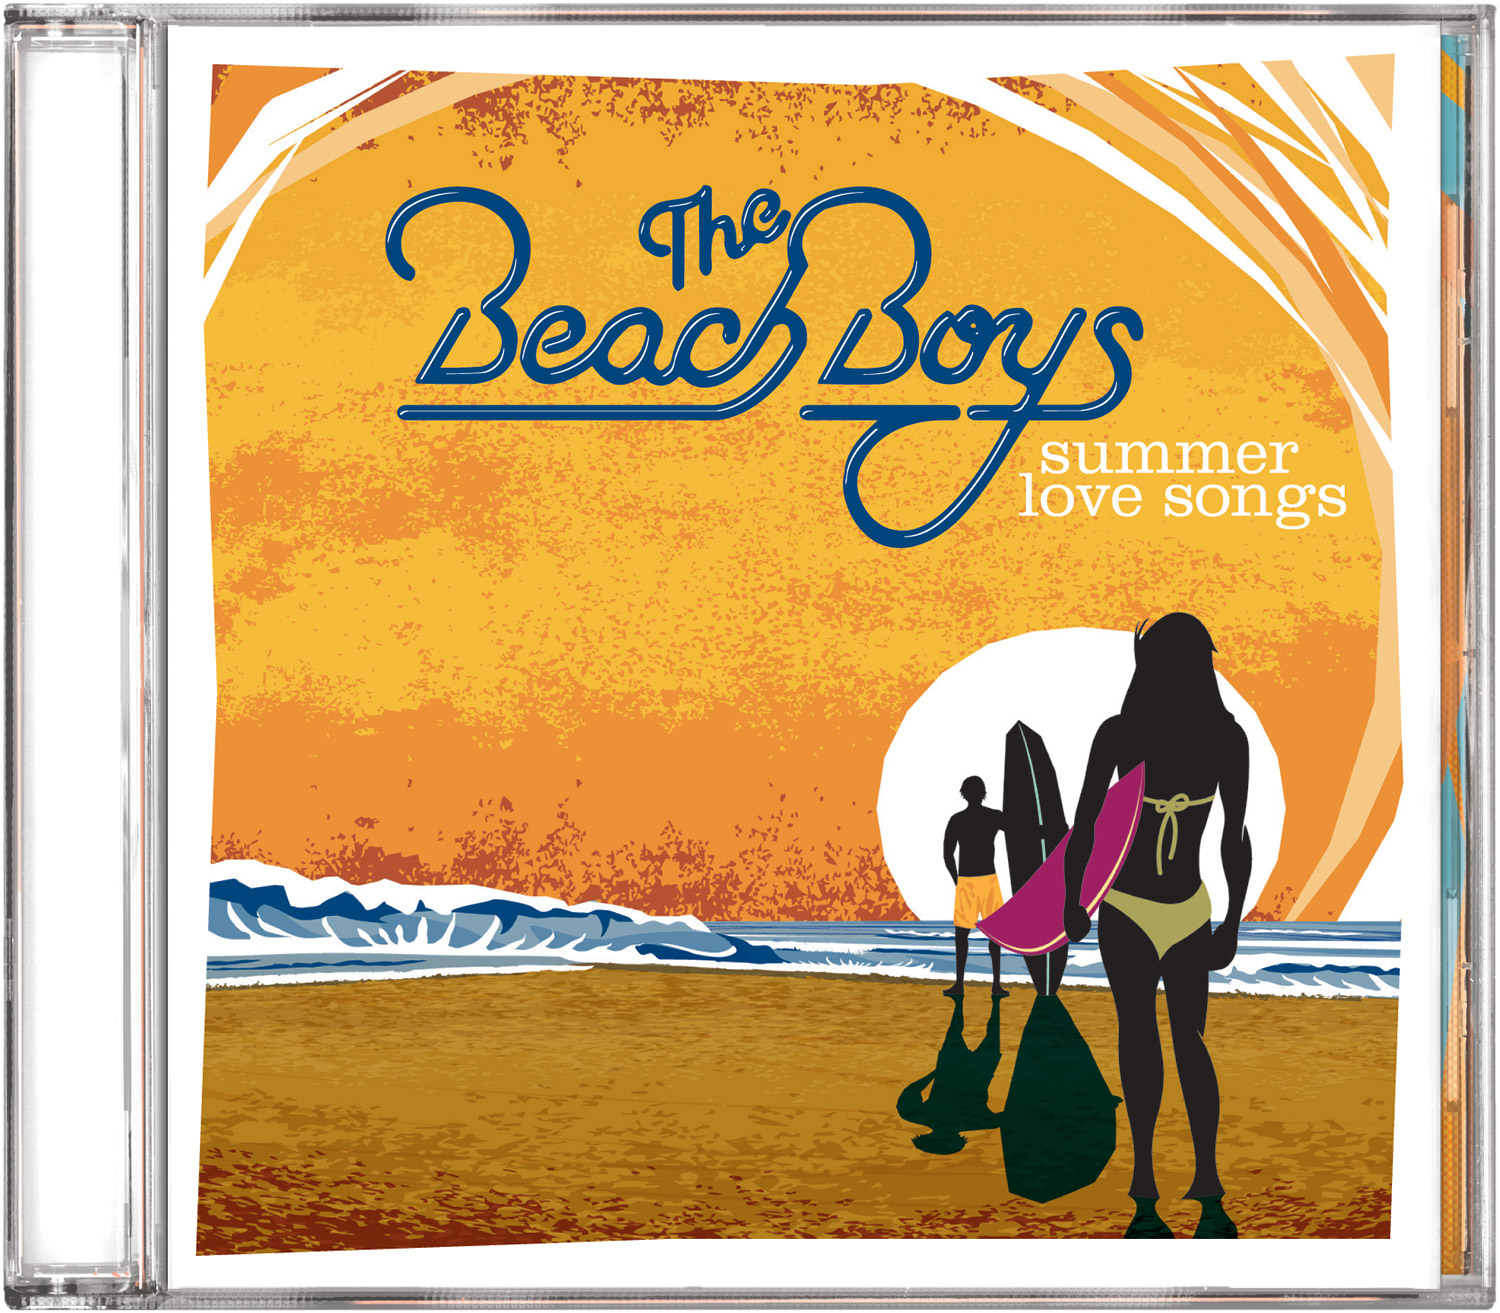 The Beach Boys Summer Love Songs